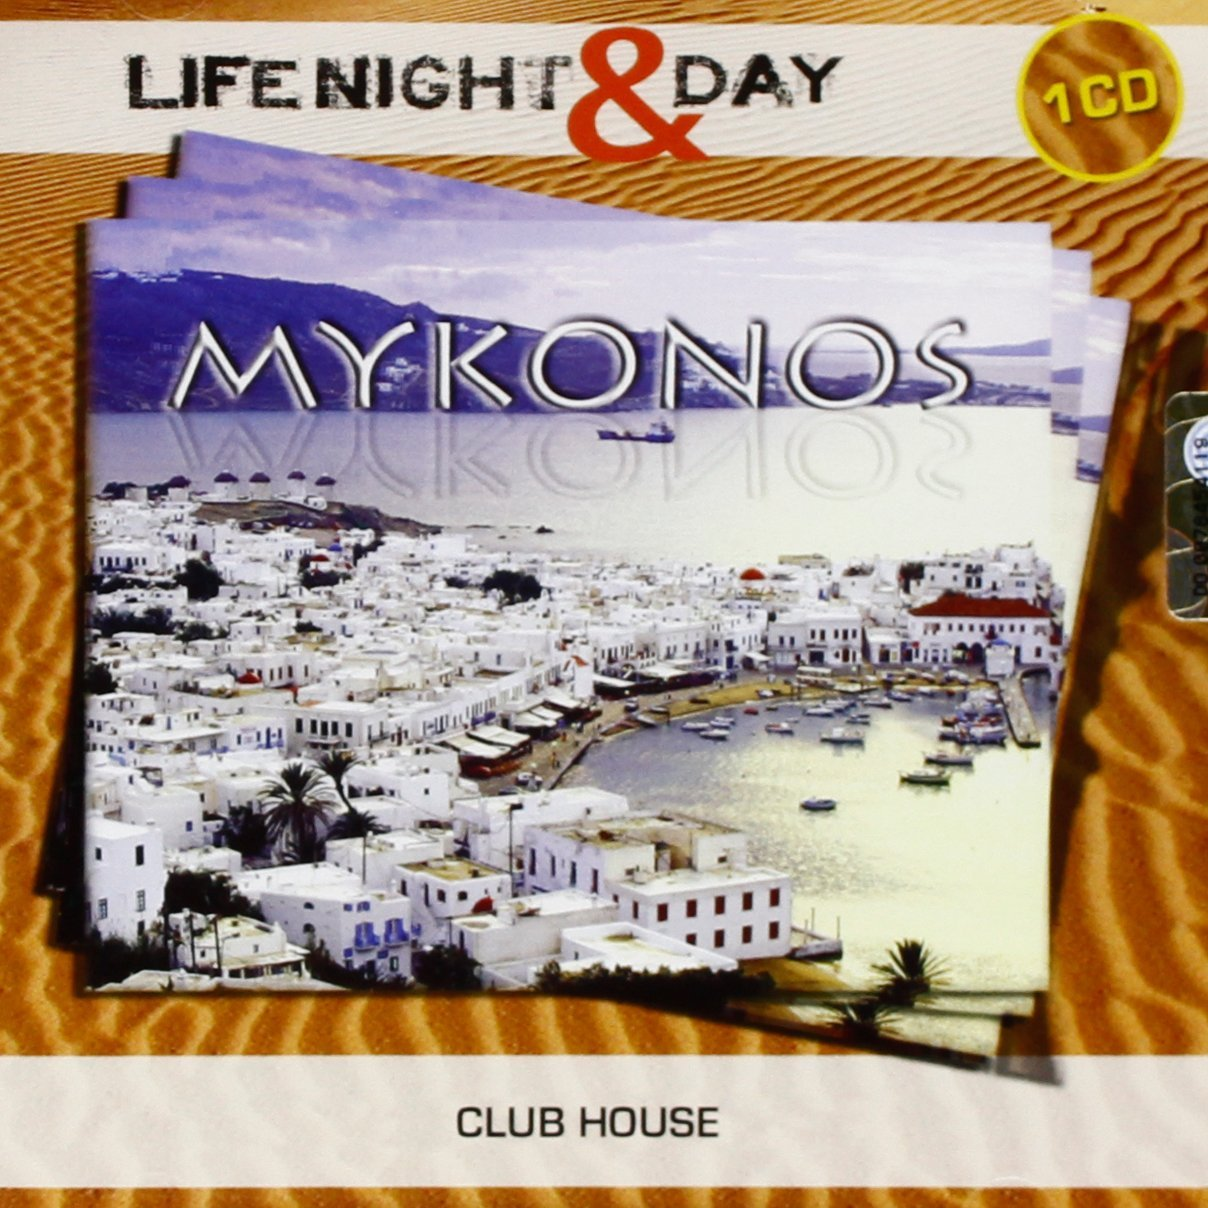 Life Night & Day - Mykonos